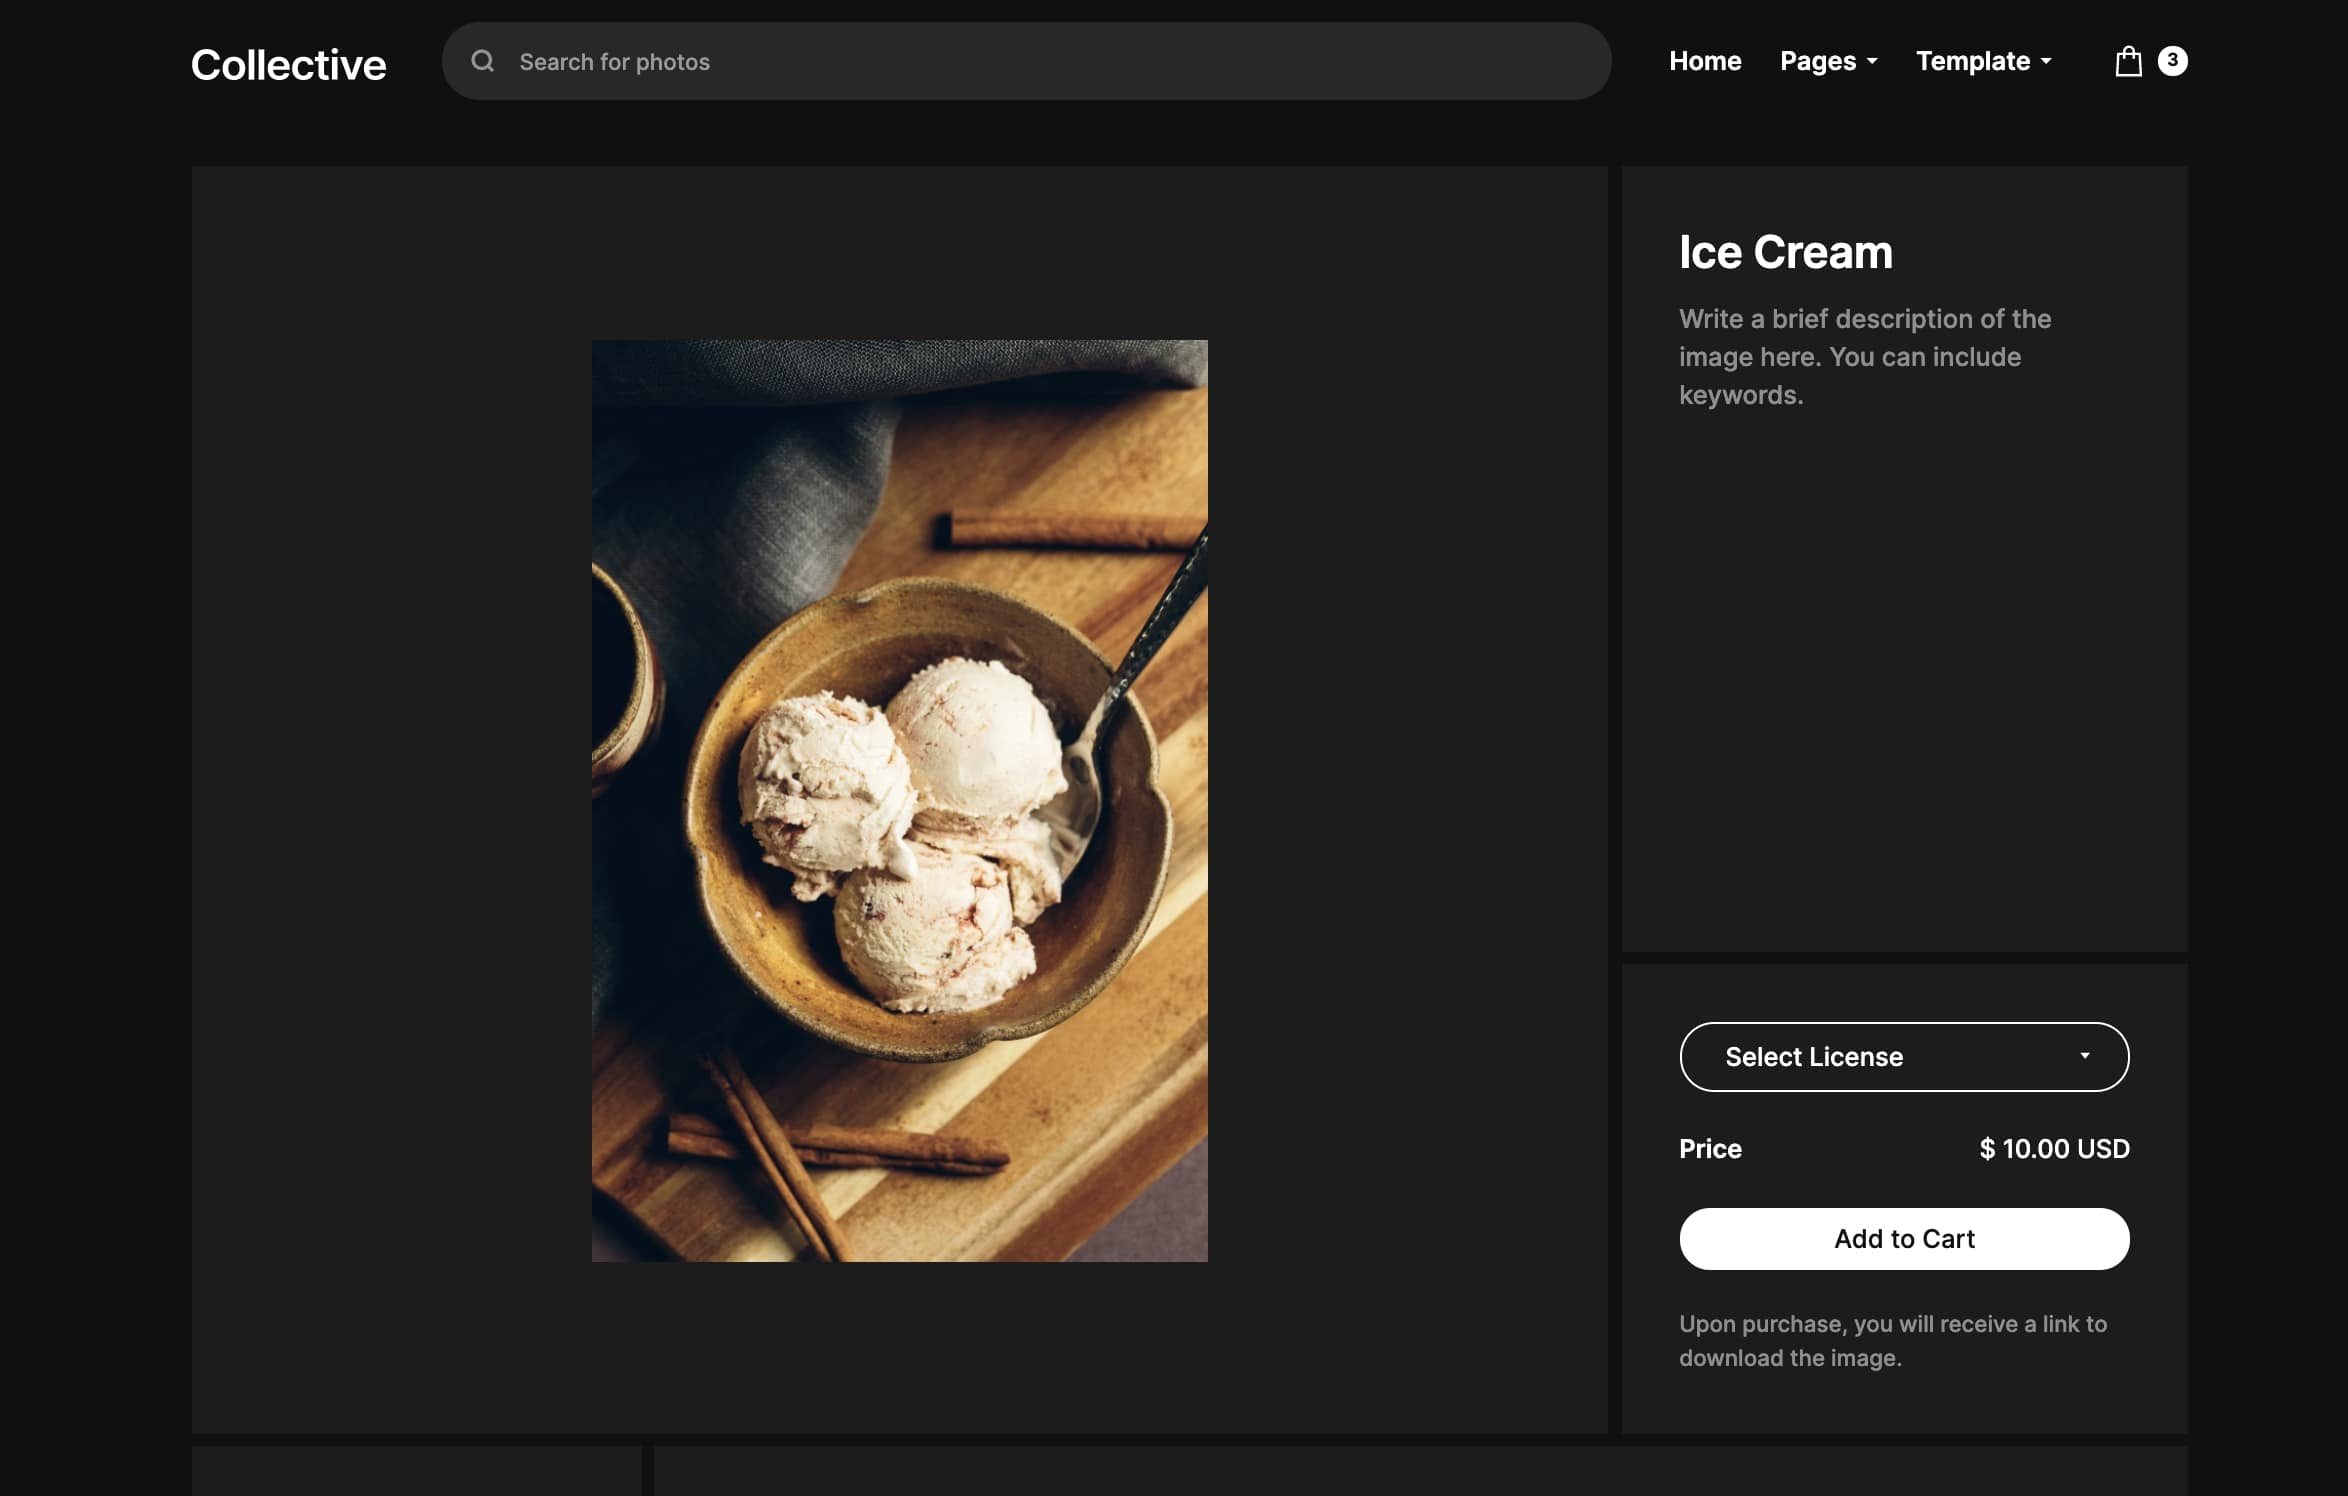 collective product page